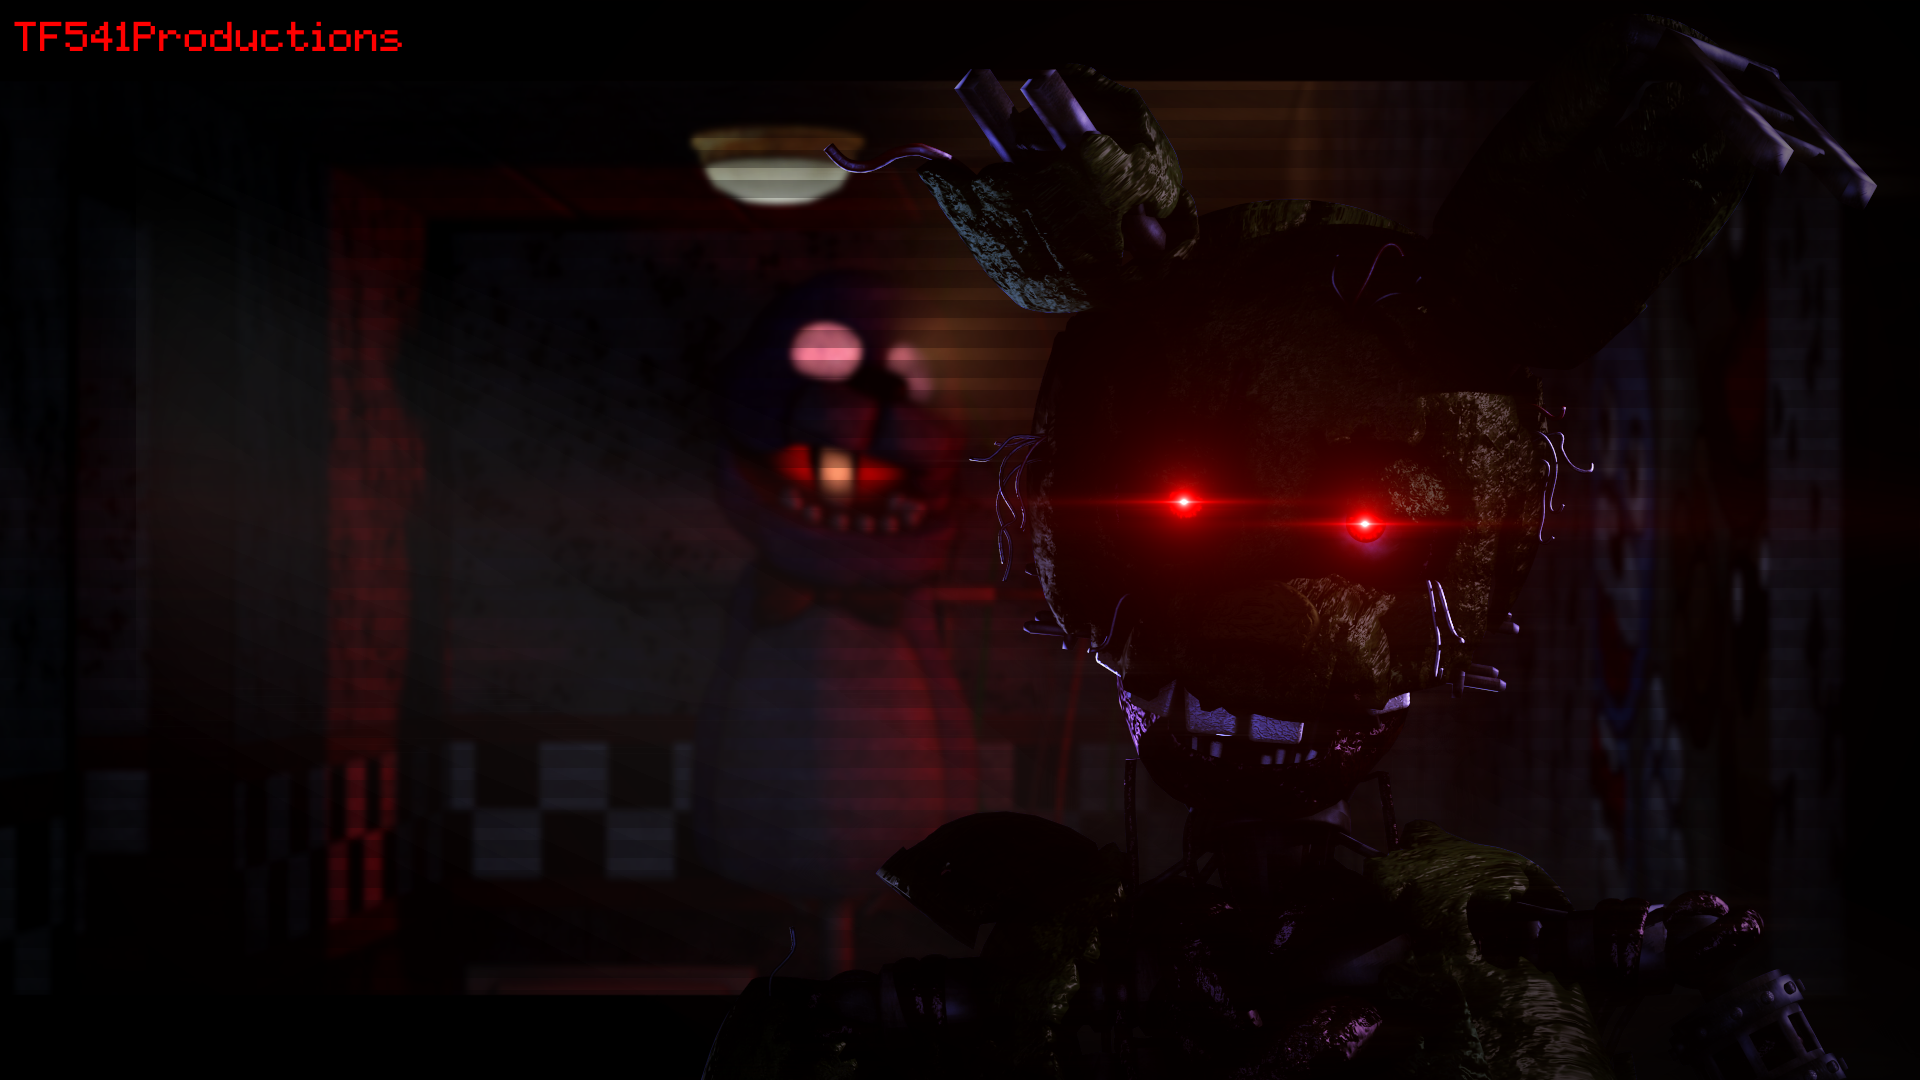 Ignited Springtrap Wallpaper by TF541Productions